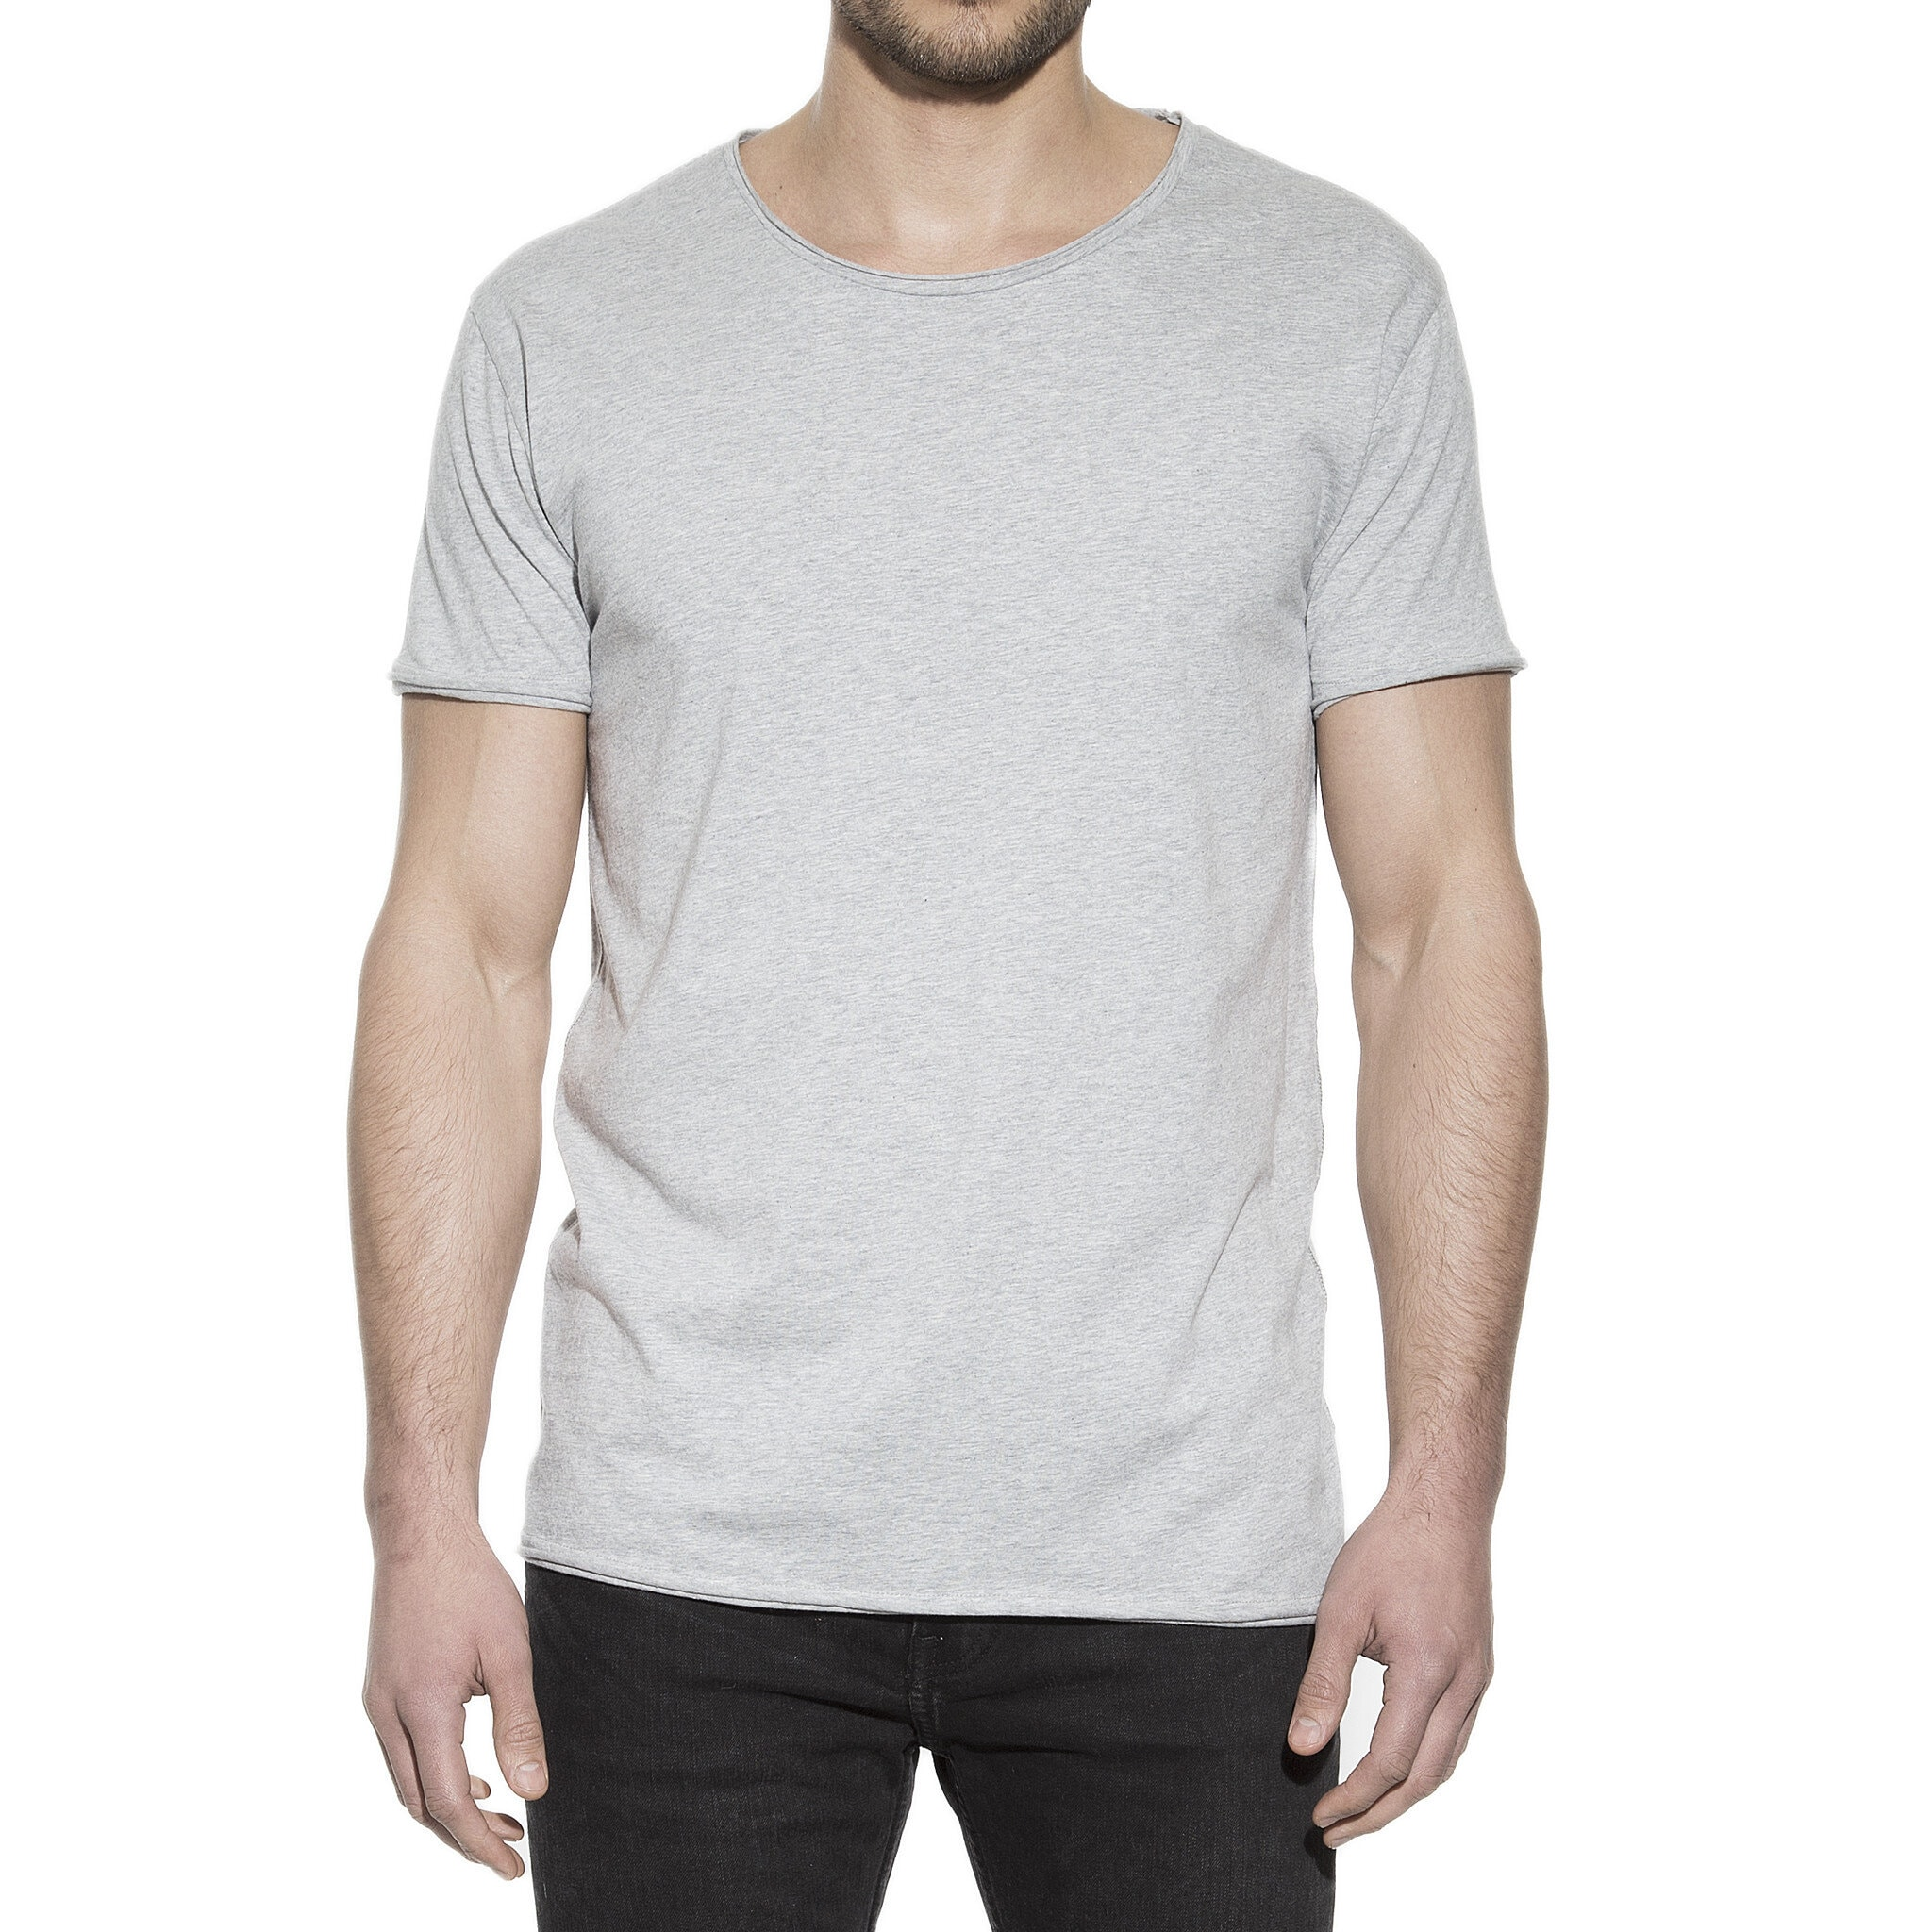 103203_Man_Crew-Neck_relaxed_grey-melange_1